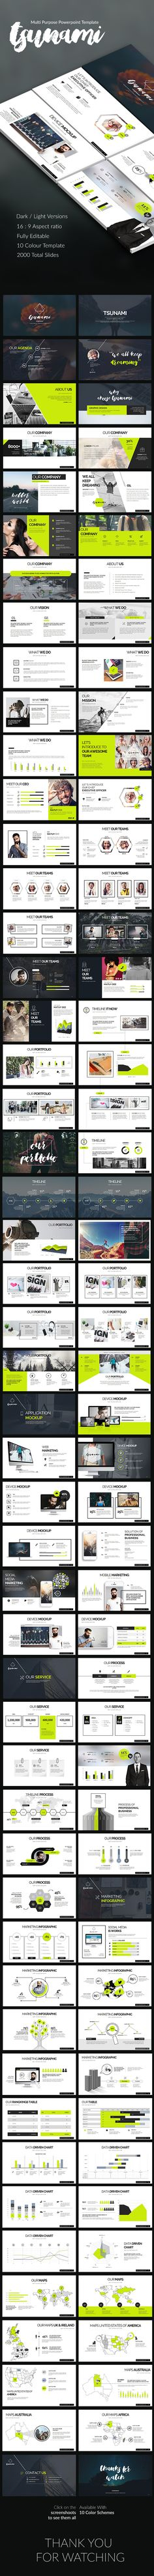 Tsunami Powerpoint Presentation Template